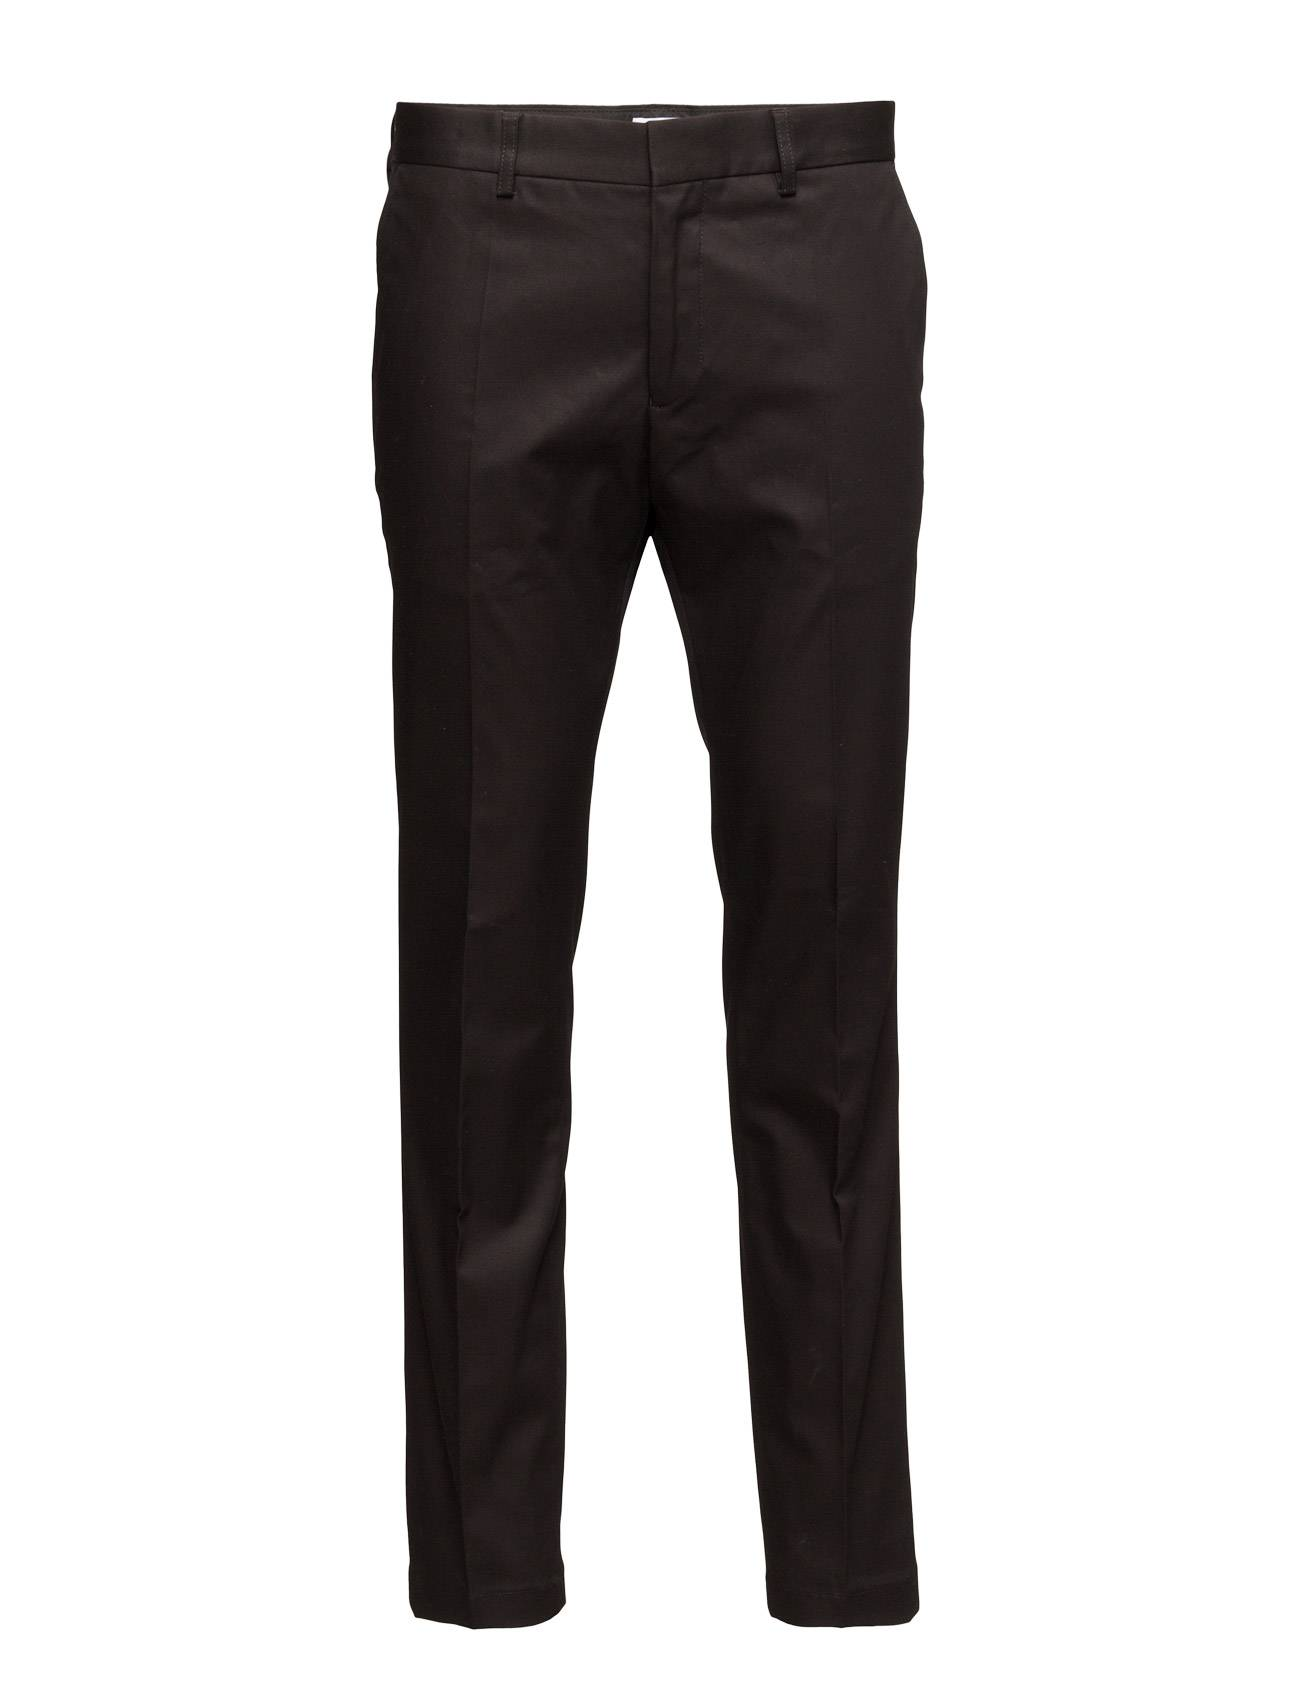 Filippa K M. Liam Sharp Cotton Pants